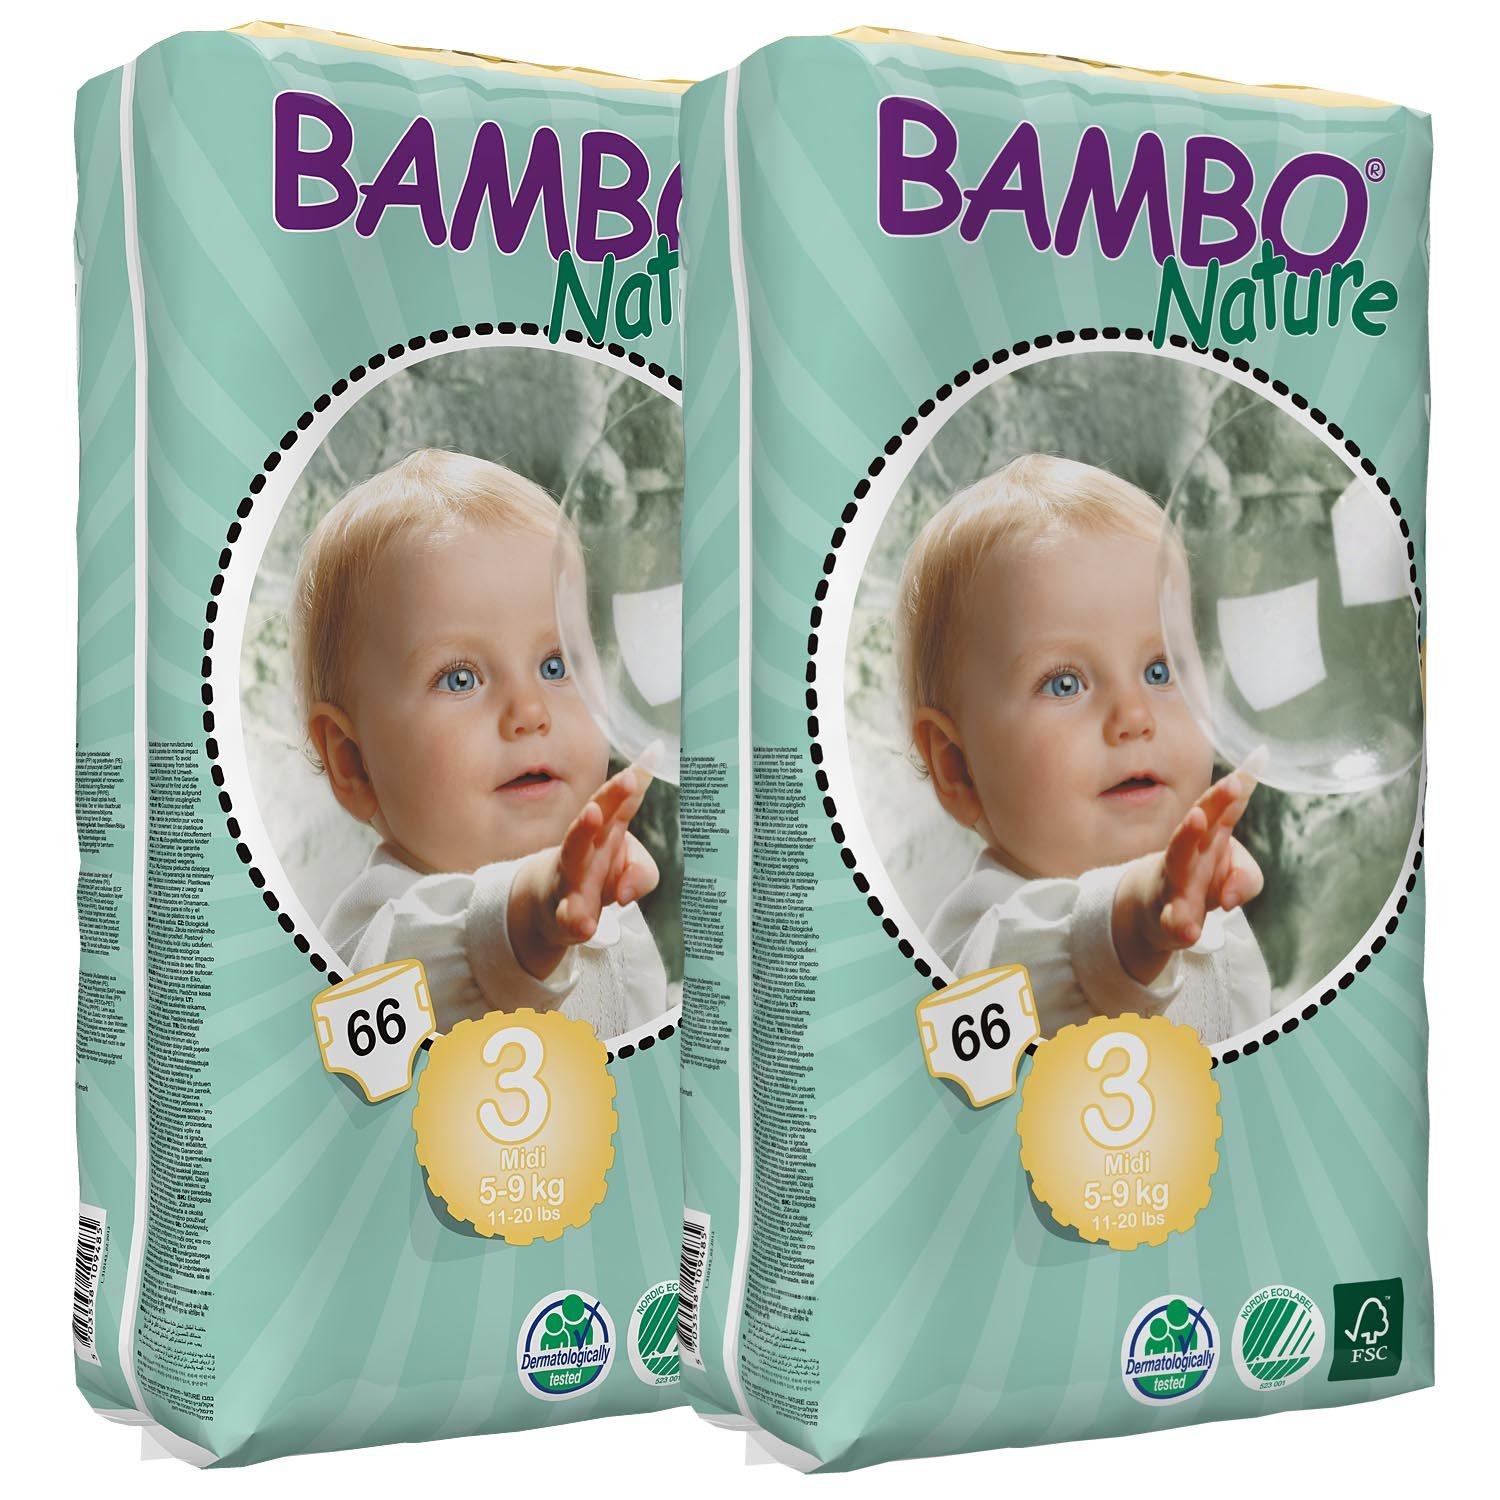 Bambo Nature Nappies (Tall) Twin Pack - Maxi (Size 4) Abena